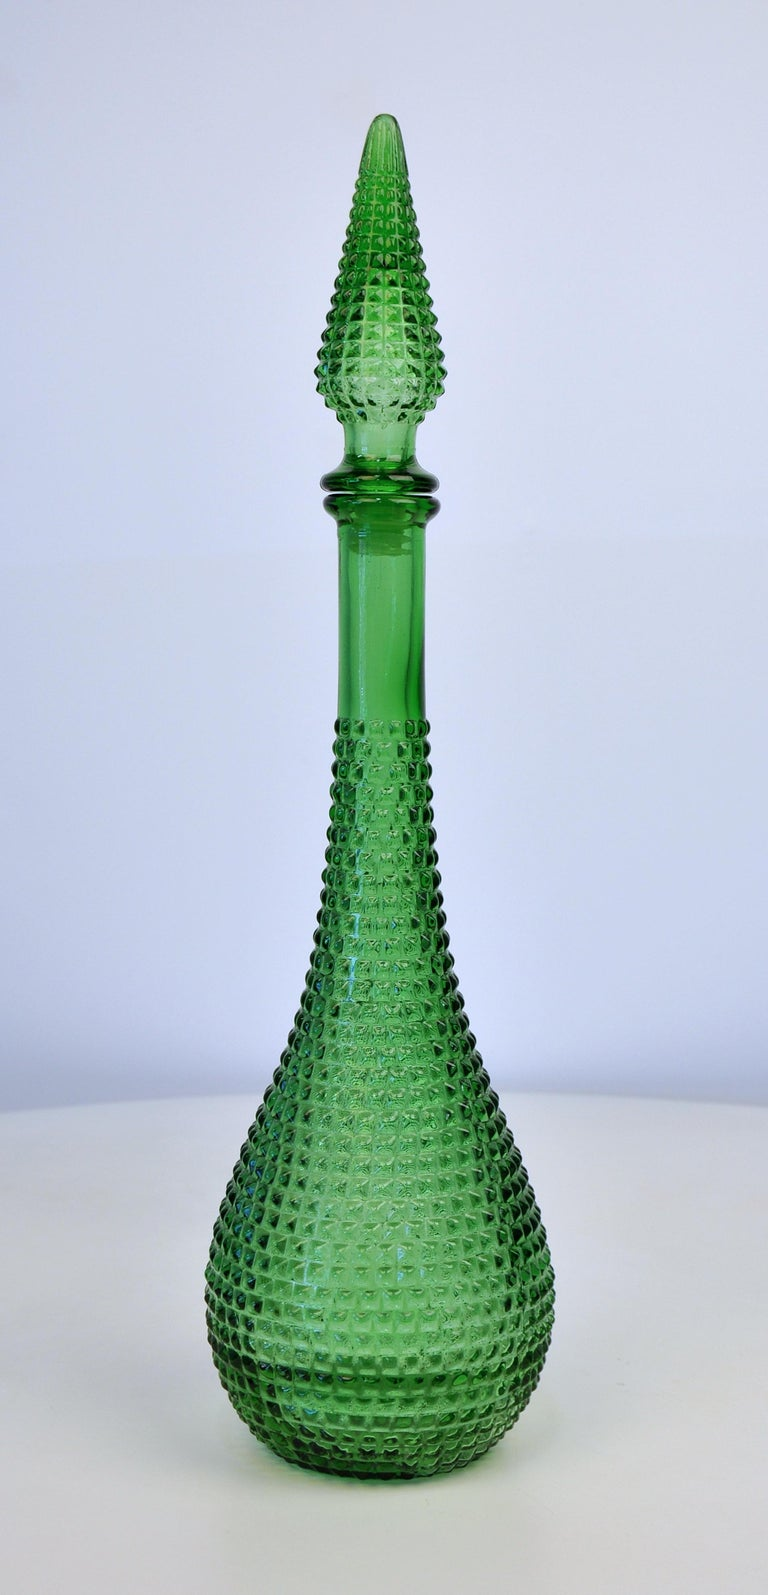 This vintage Italian Mid-Century Modern large art glass genie bottle features a diamond pattern and a rich moss green color. Manufactured by Rossini, it dates from the 1960s. Quite tall and very decorative! Marked Made in Italy on the bottom.